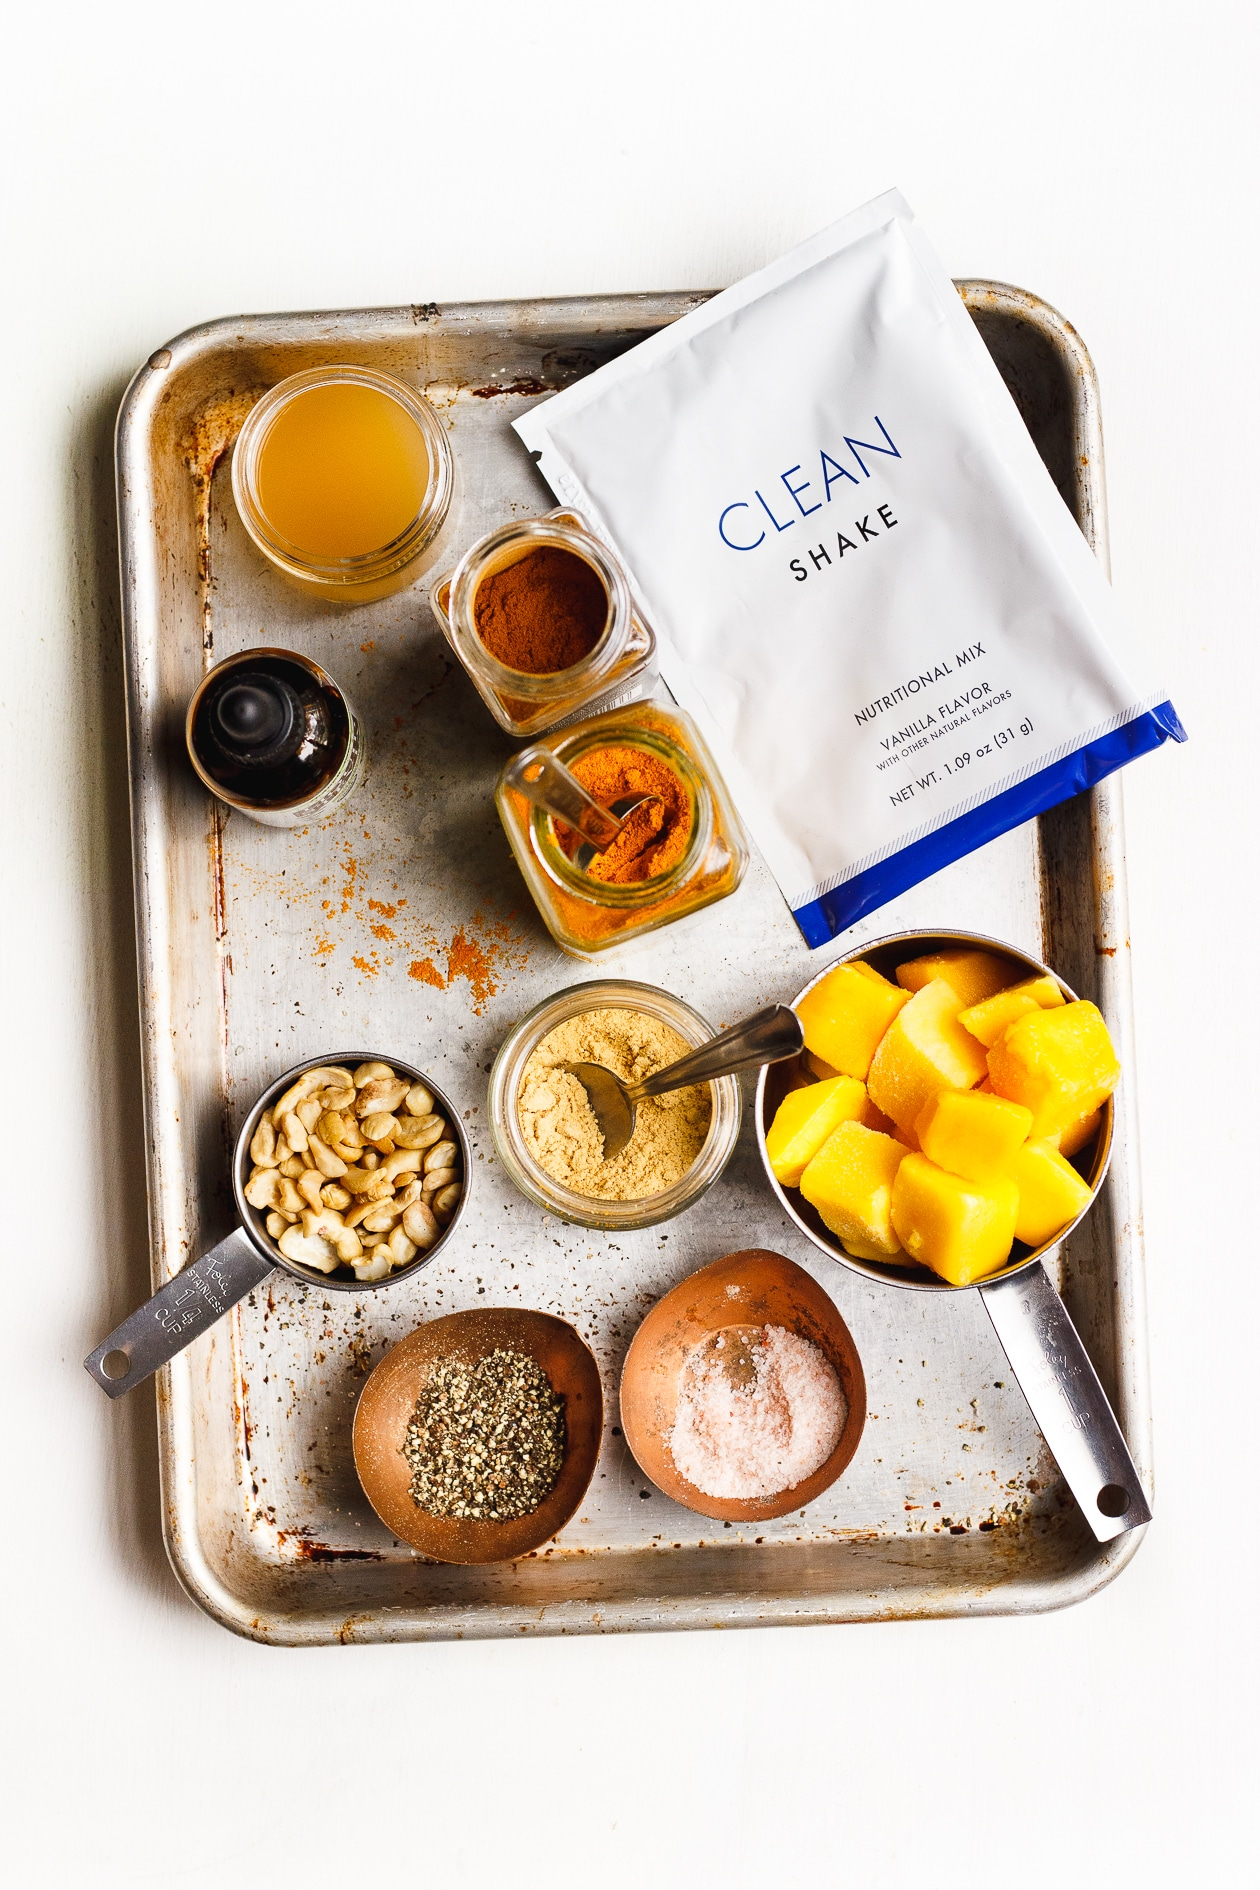 My Clean Program Review + my favorite golden smoothie! | Dr. Junger's 21 Day Clean Program is revolutionary and life-changing. A hearty cleanse where you eat nutrient-dense food, feel amazing and full.